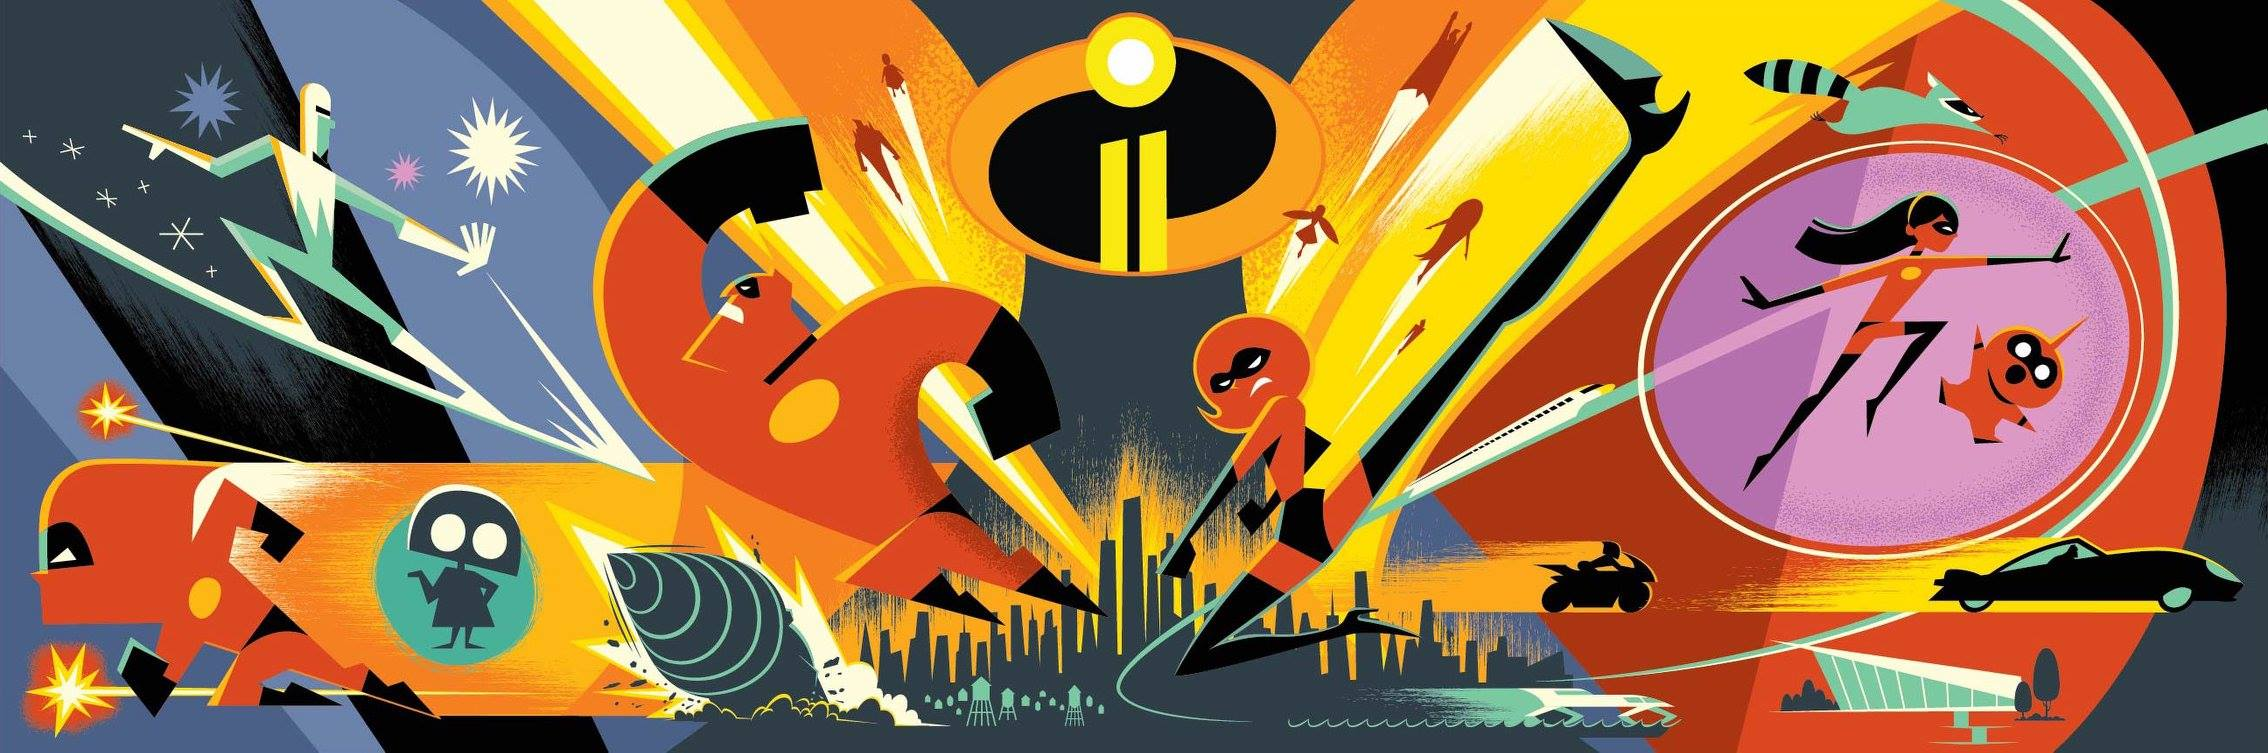 Incredibles_2_FirstLook_FINAL-1200x398